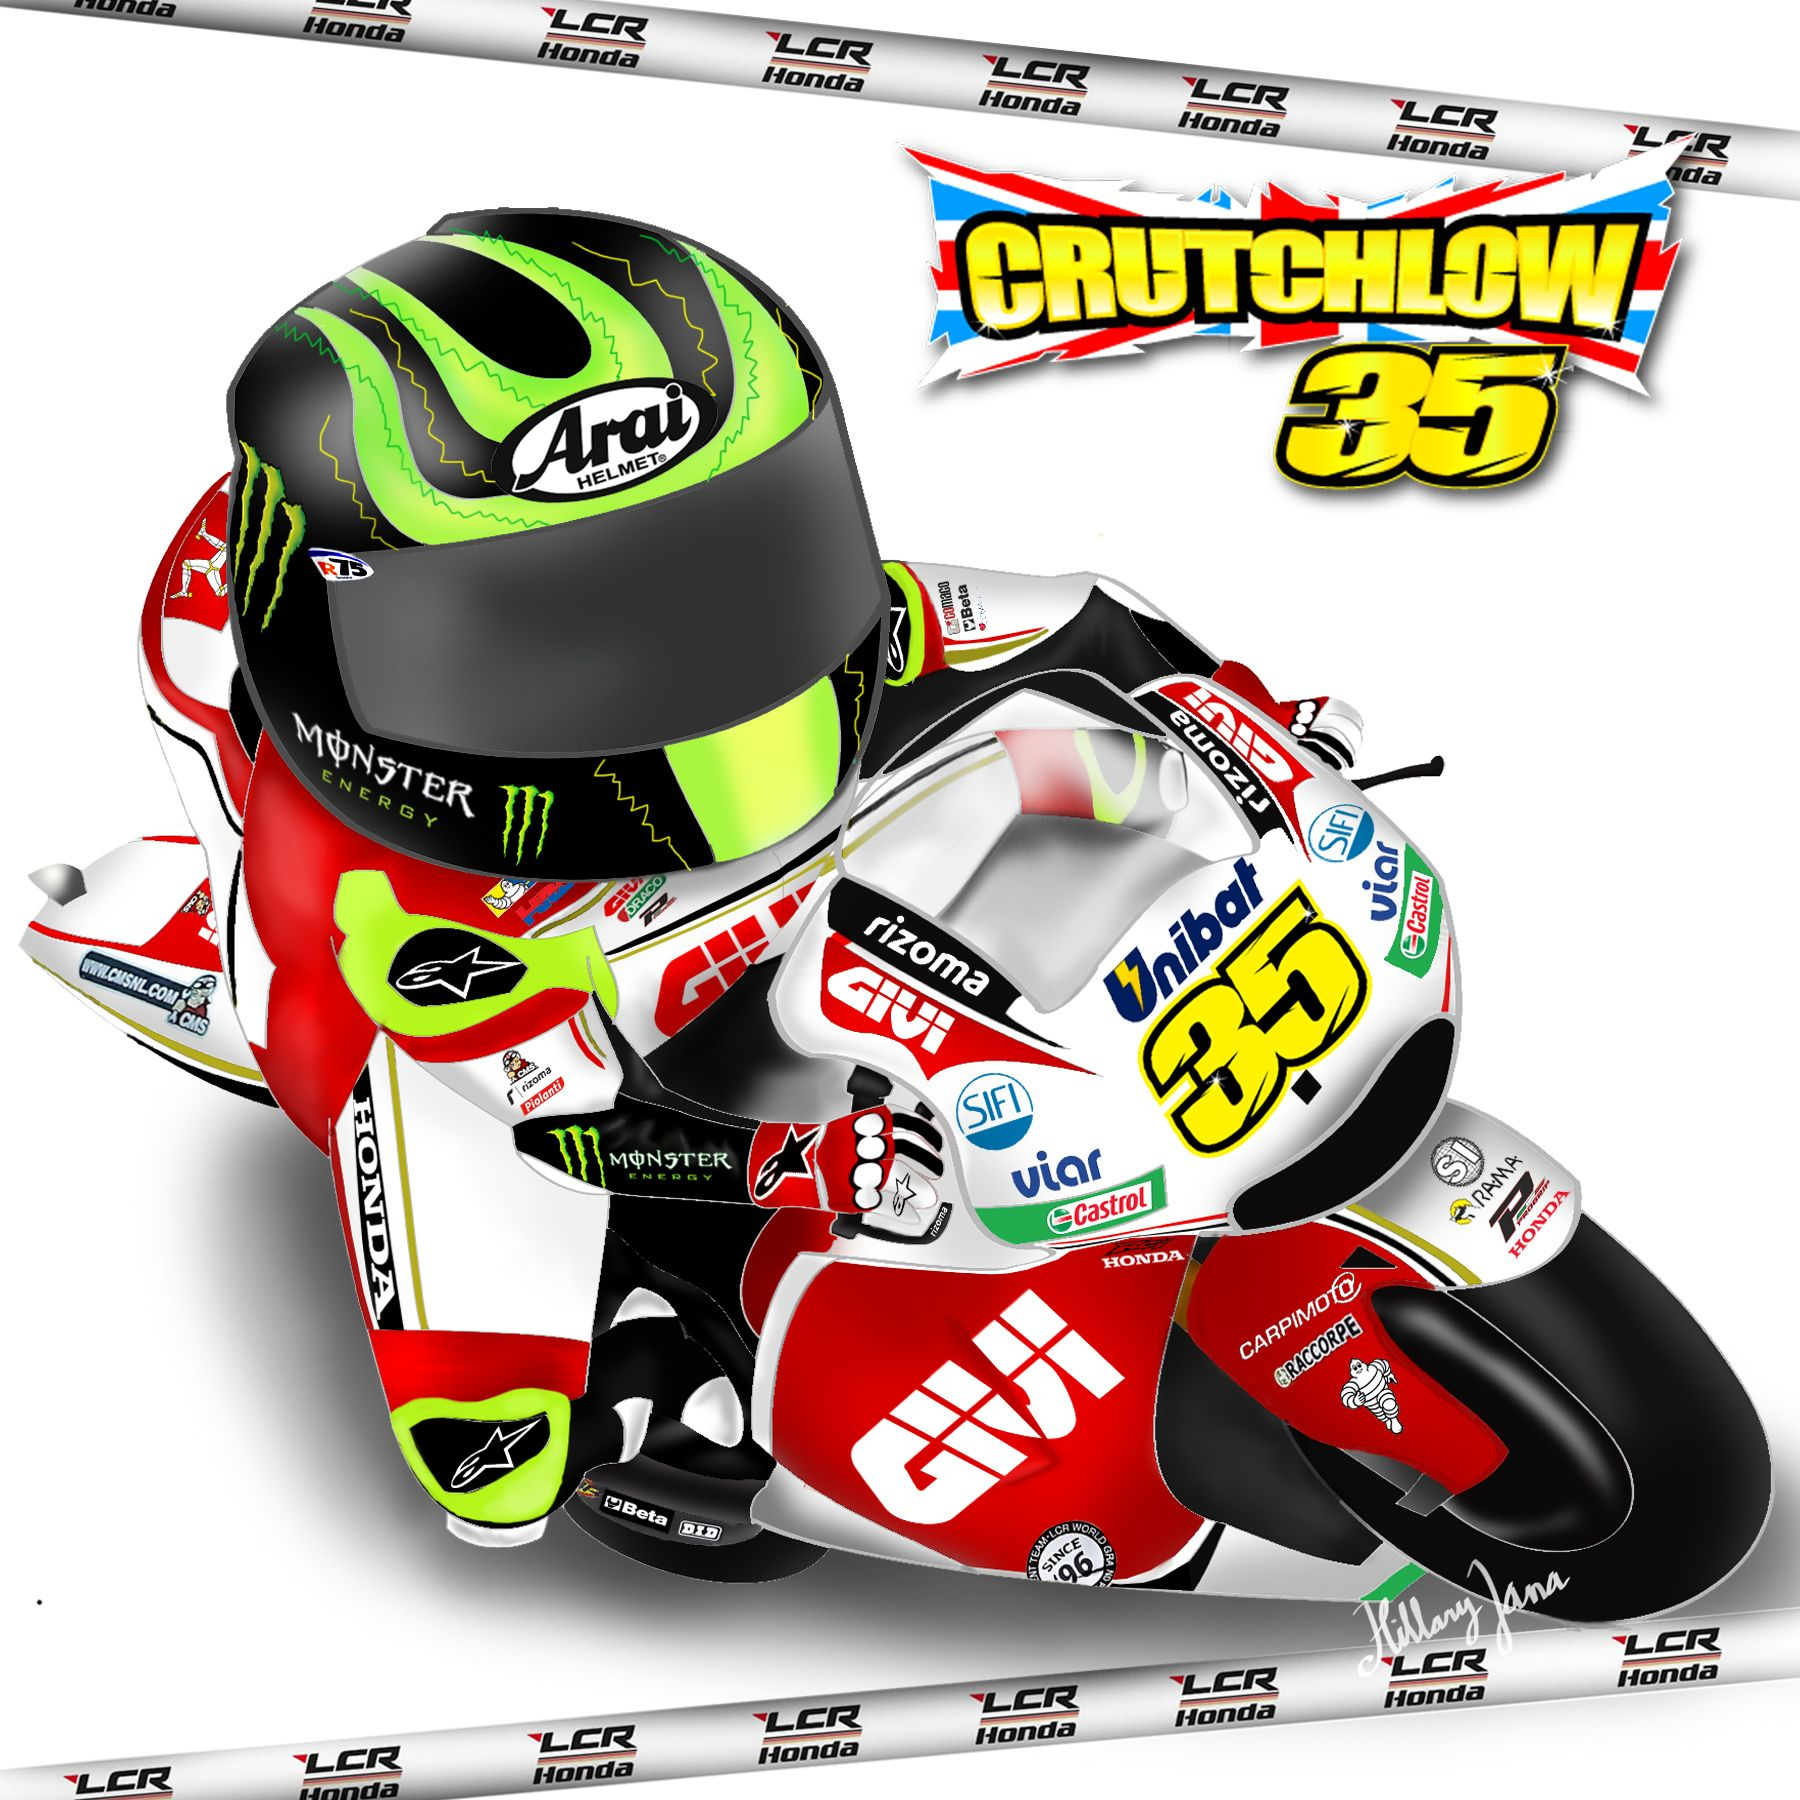 My latest work ;) Cal Crutchlow is my most favorite rider, and also LCR Honda is my most favorite team! Best combination ever!